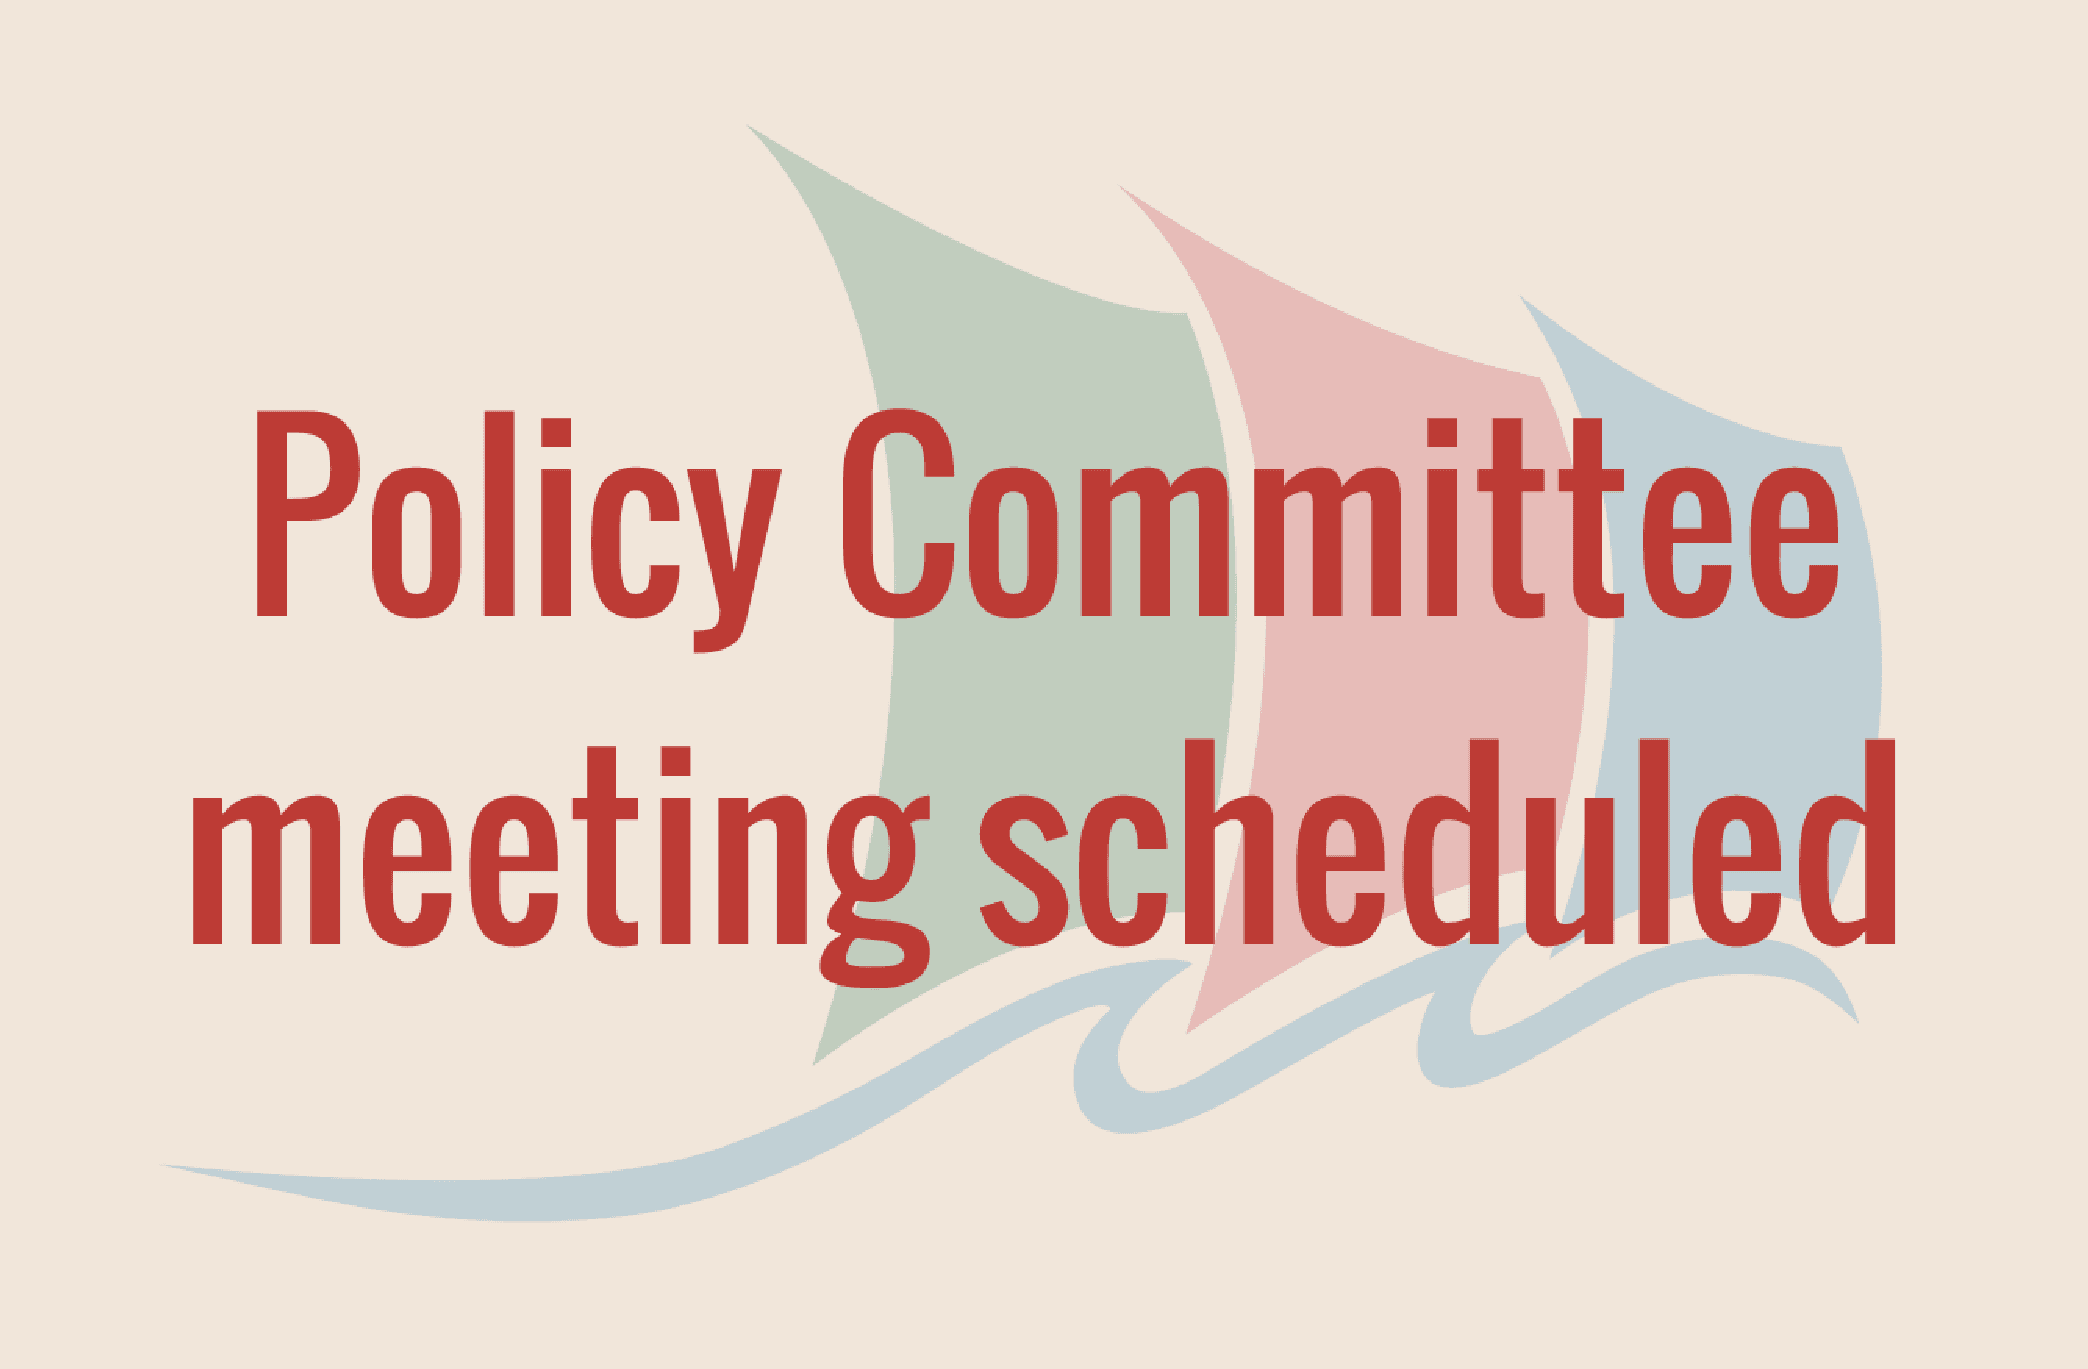 Policy Committee scheduled